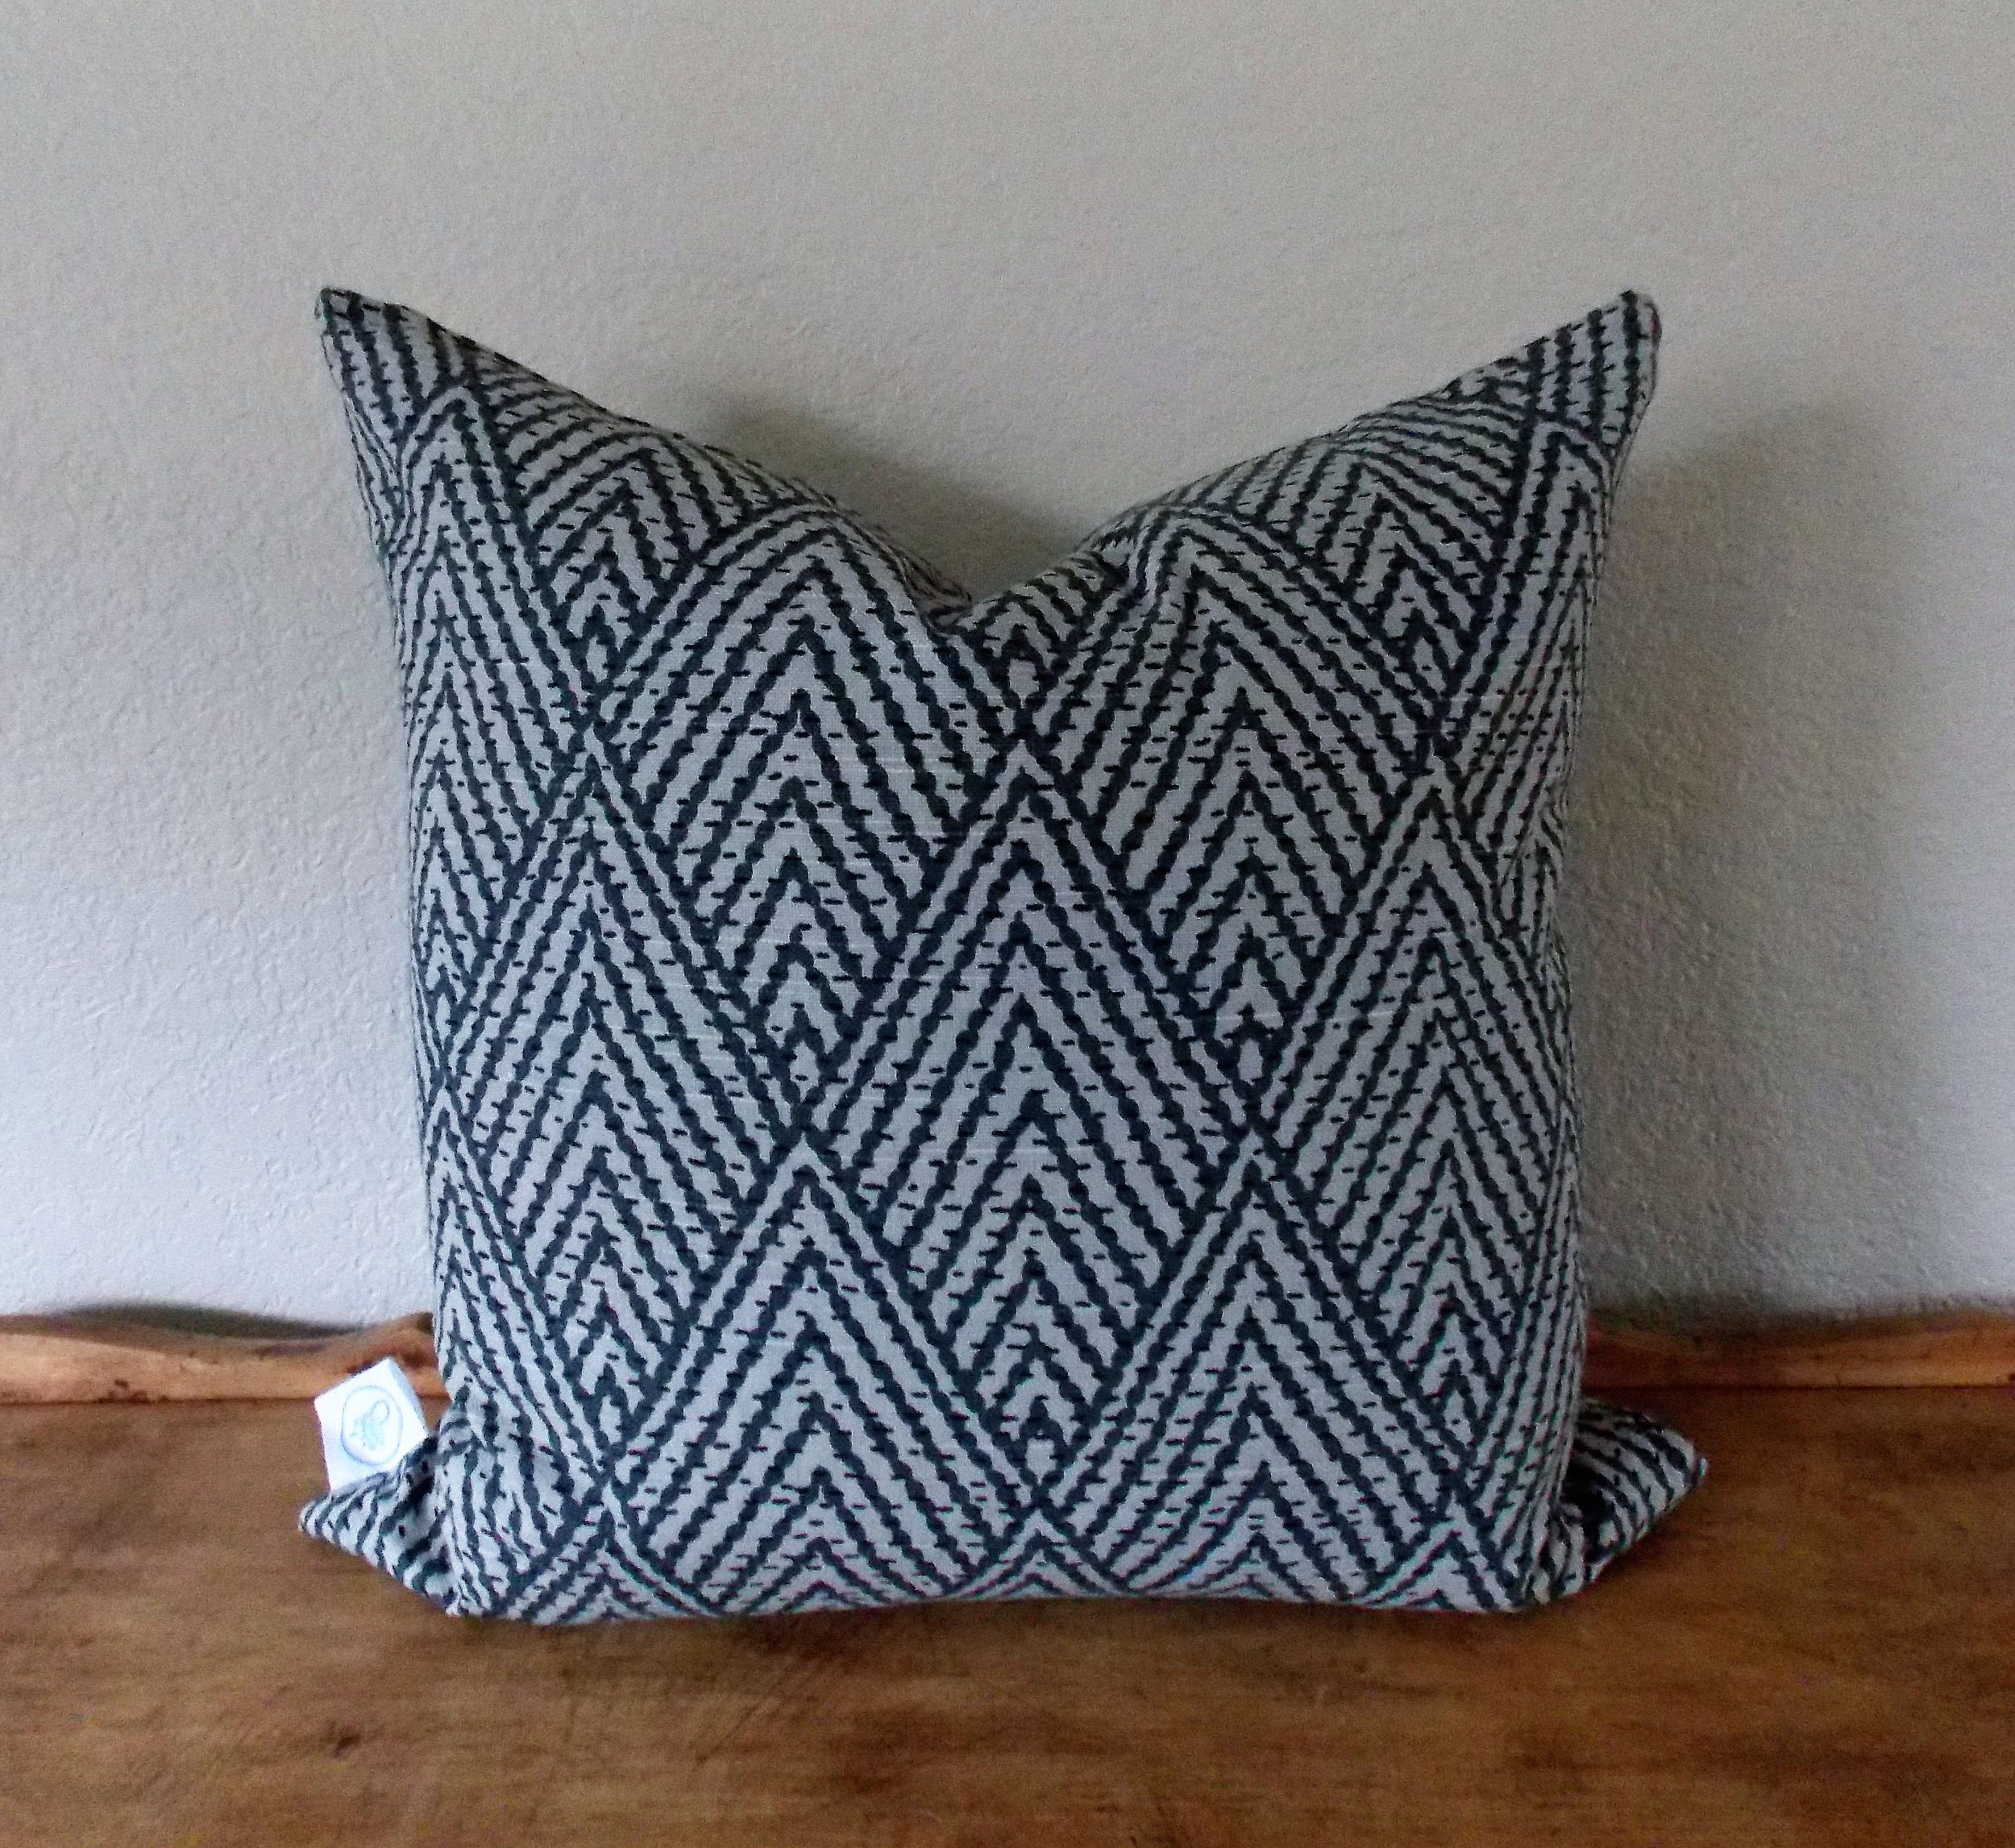 "Tahitian - Striking variation on a chevron pattern, on cotton. Constructed with an invisible zipper. Wash and dry medium.18"" x 18"" - $33Colors: charcoal/mink"